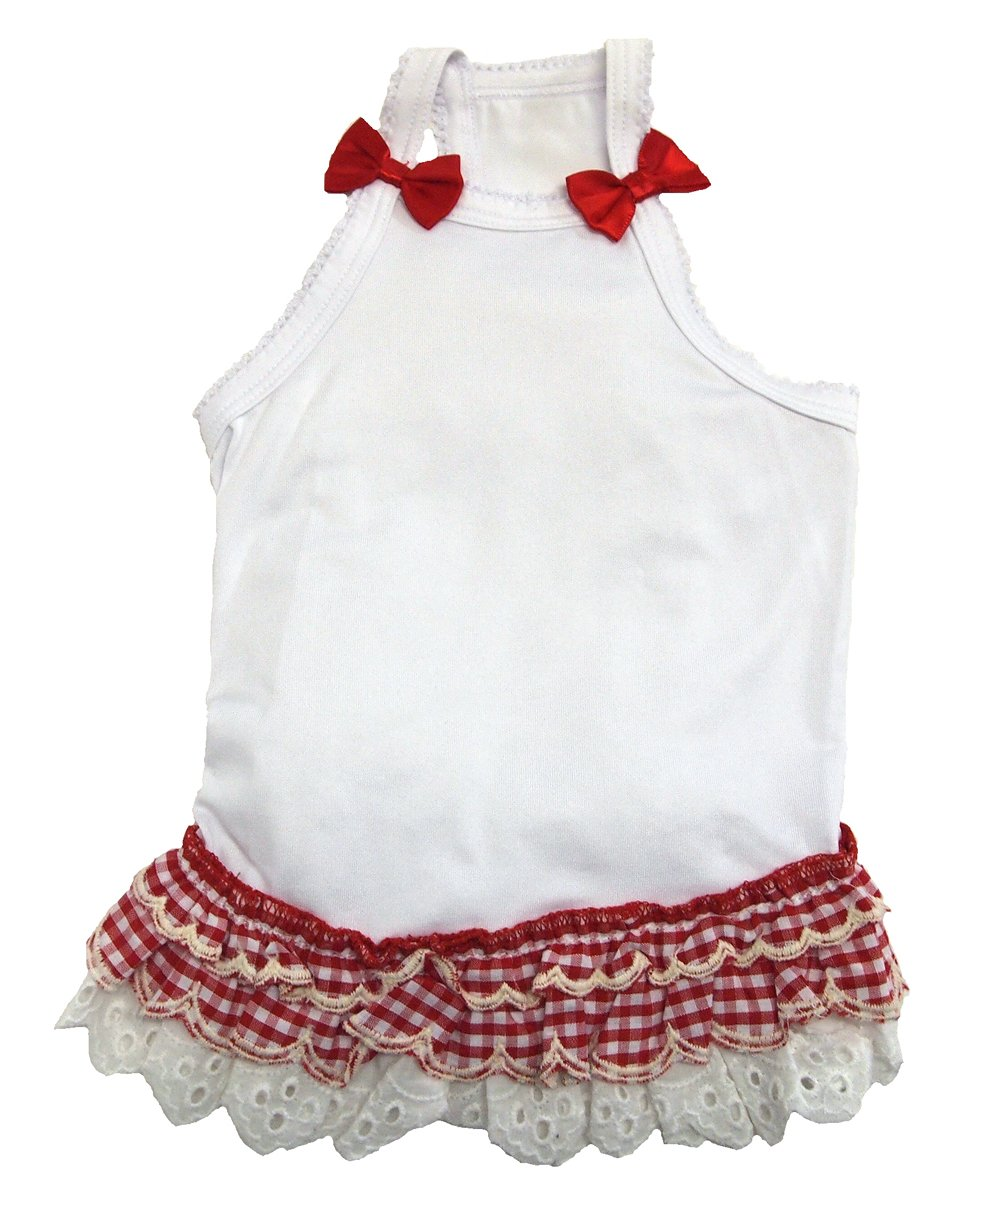 Bise (Vie Cet) gingham check ruffle camisole Red S